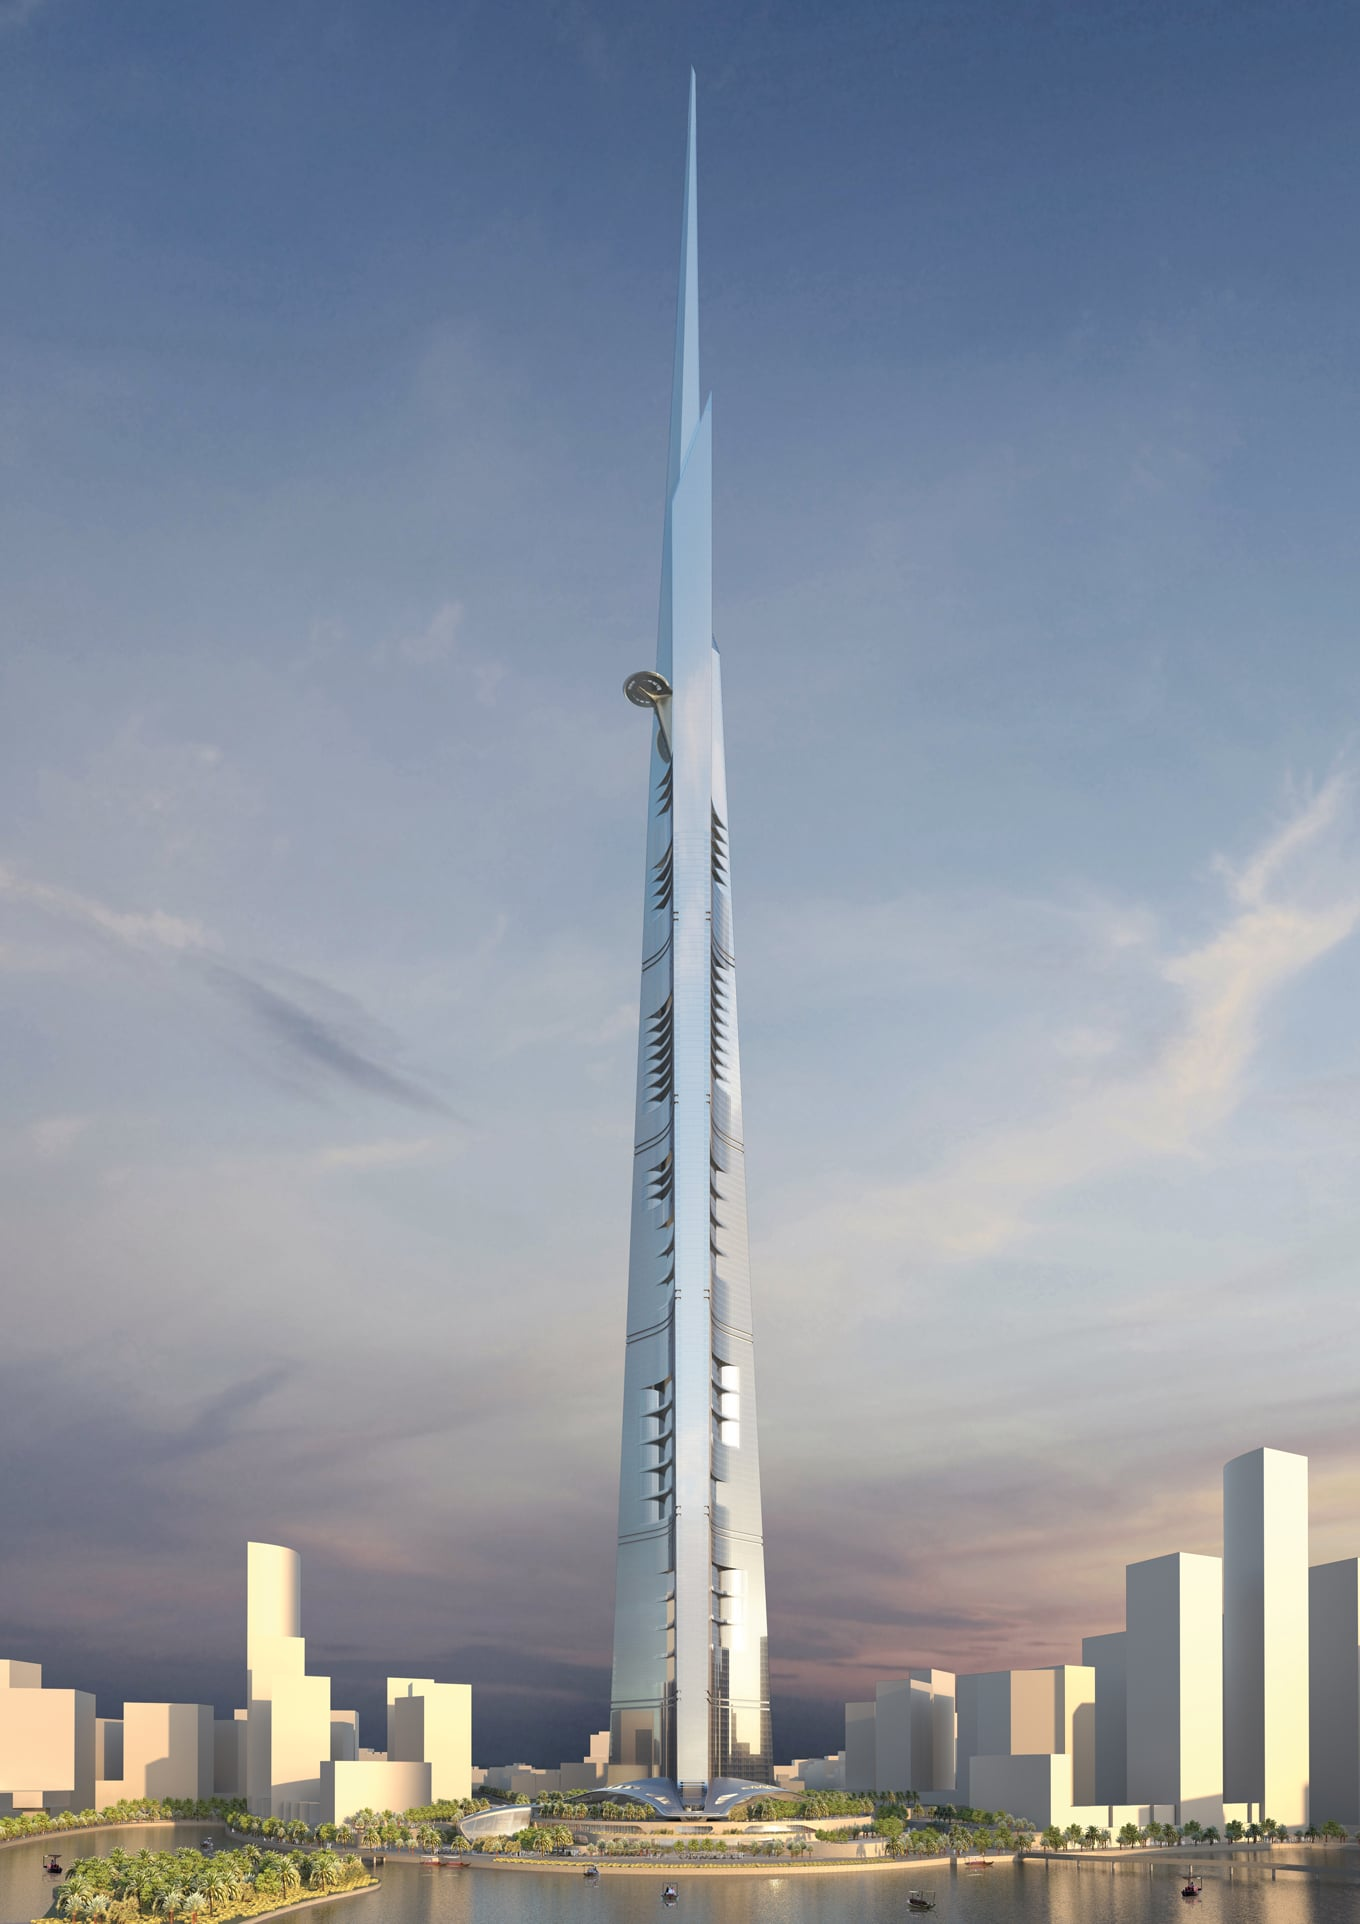 Visualization of the Jeddah Tower